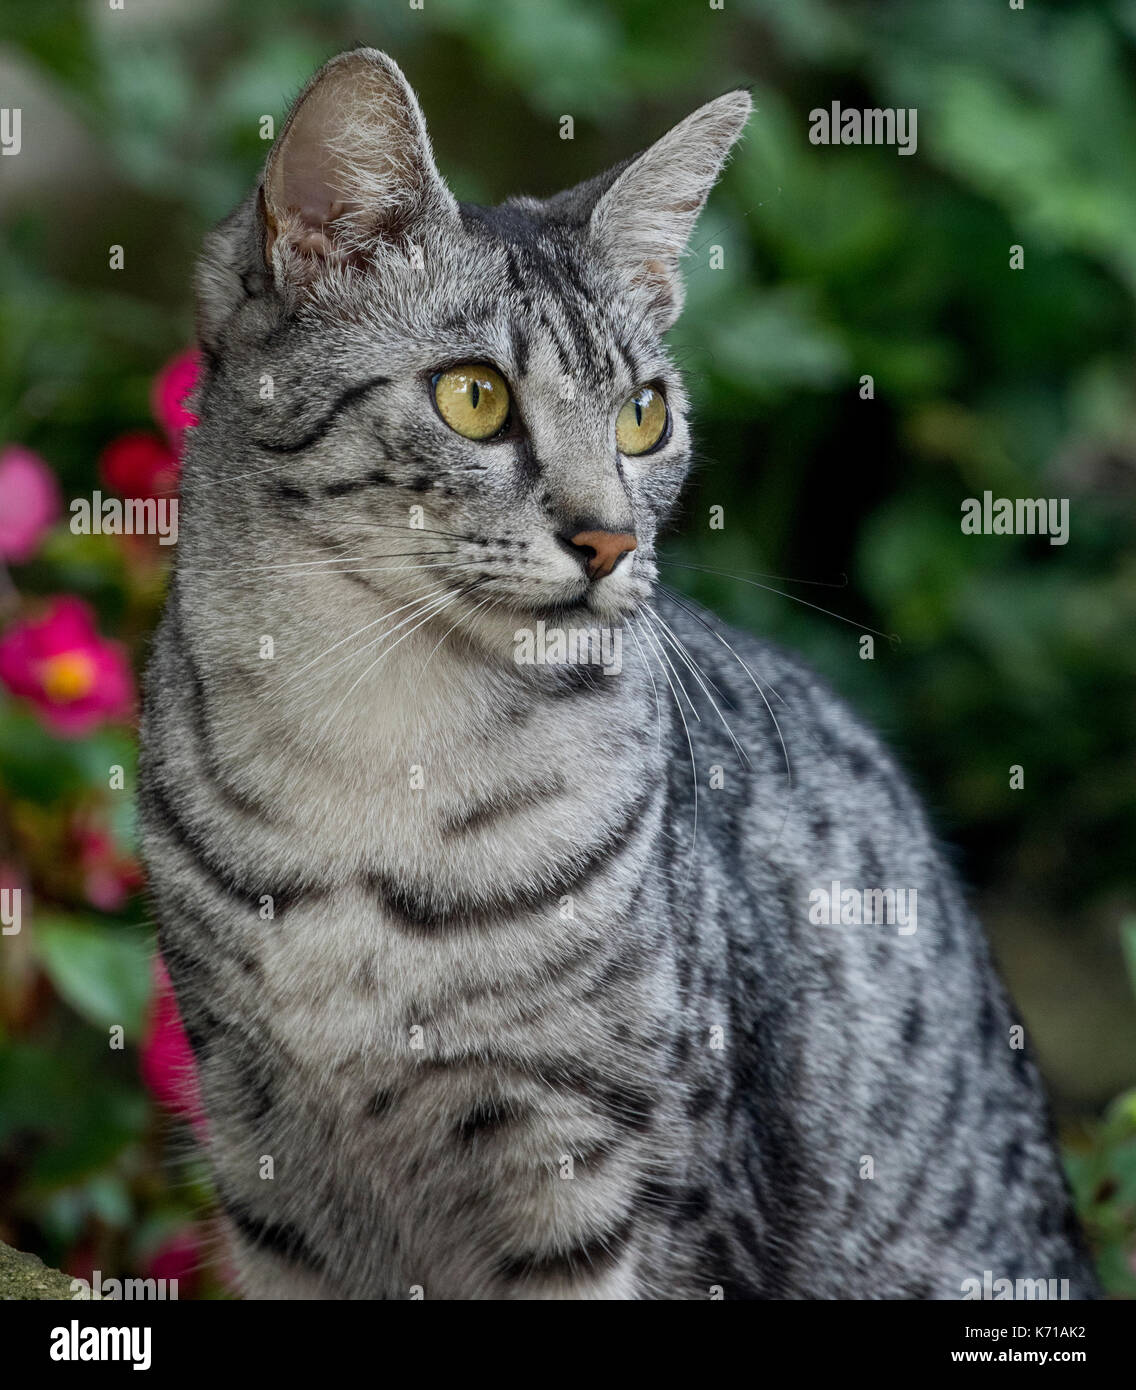 An Egyptian Mau Cat sitting on a garden wall Stock Photo